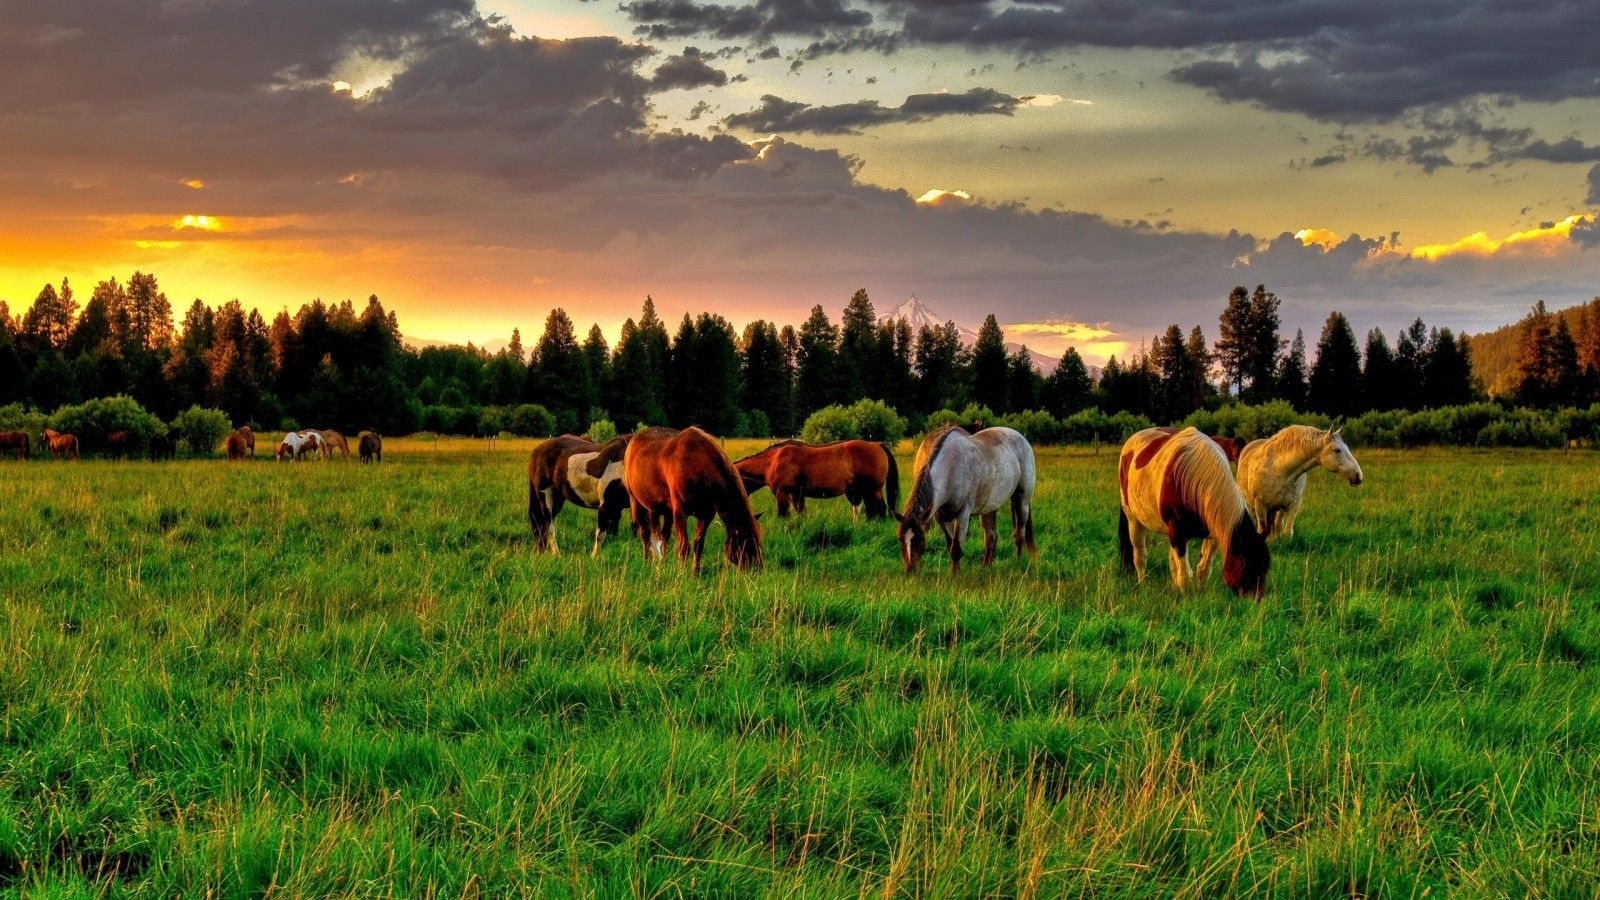 Must see Wallpaper Horse Landscape - cd92640a13dad3e7c513f14fbf737e64  You Should Have_366320.jpg